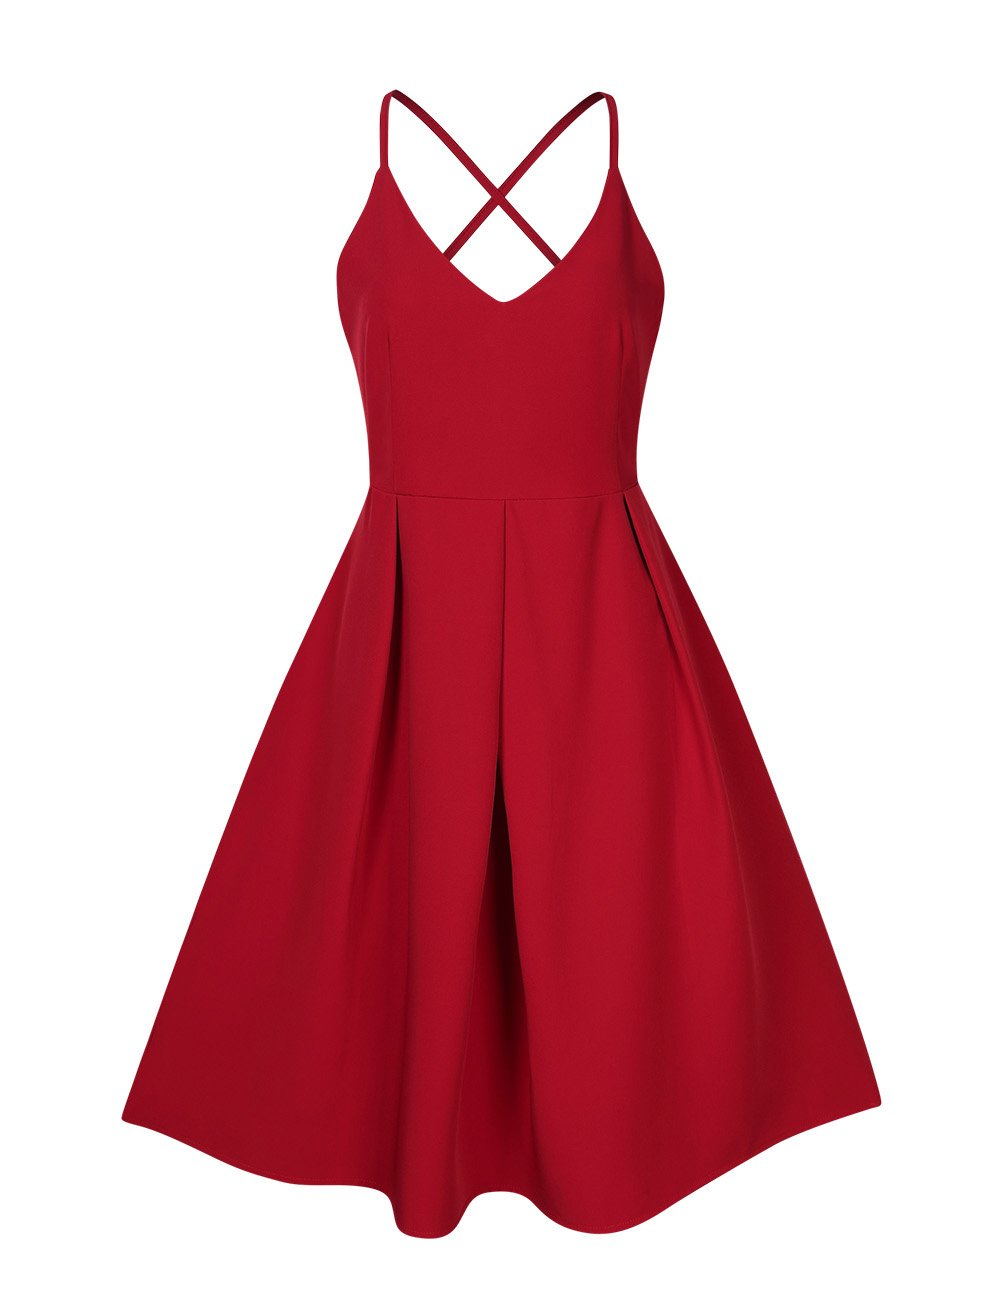 GlorySunshine Women's Deep V Neck Adjustable Spaghetti Straps Dress Sleeveless Sexy Backless Cocktail Party Dresses (S, Red2) by GlorySunshine